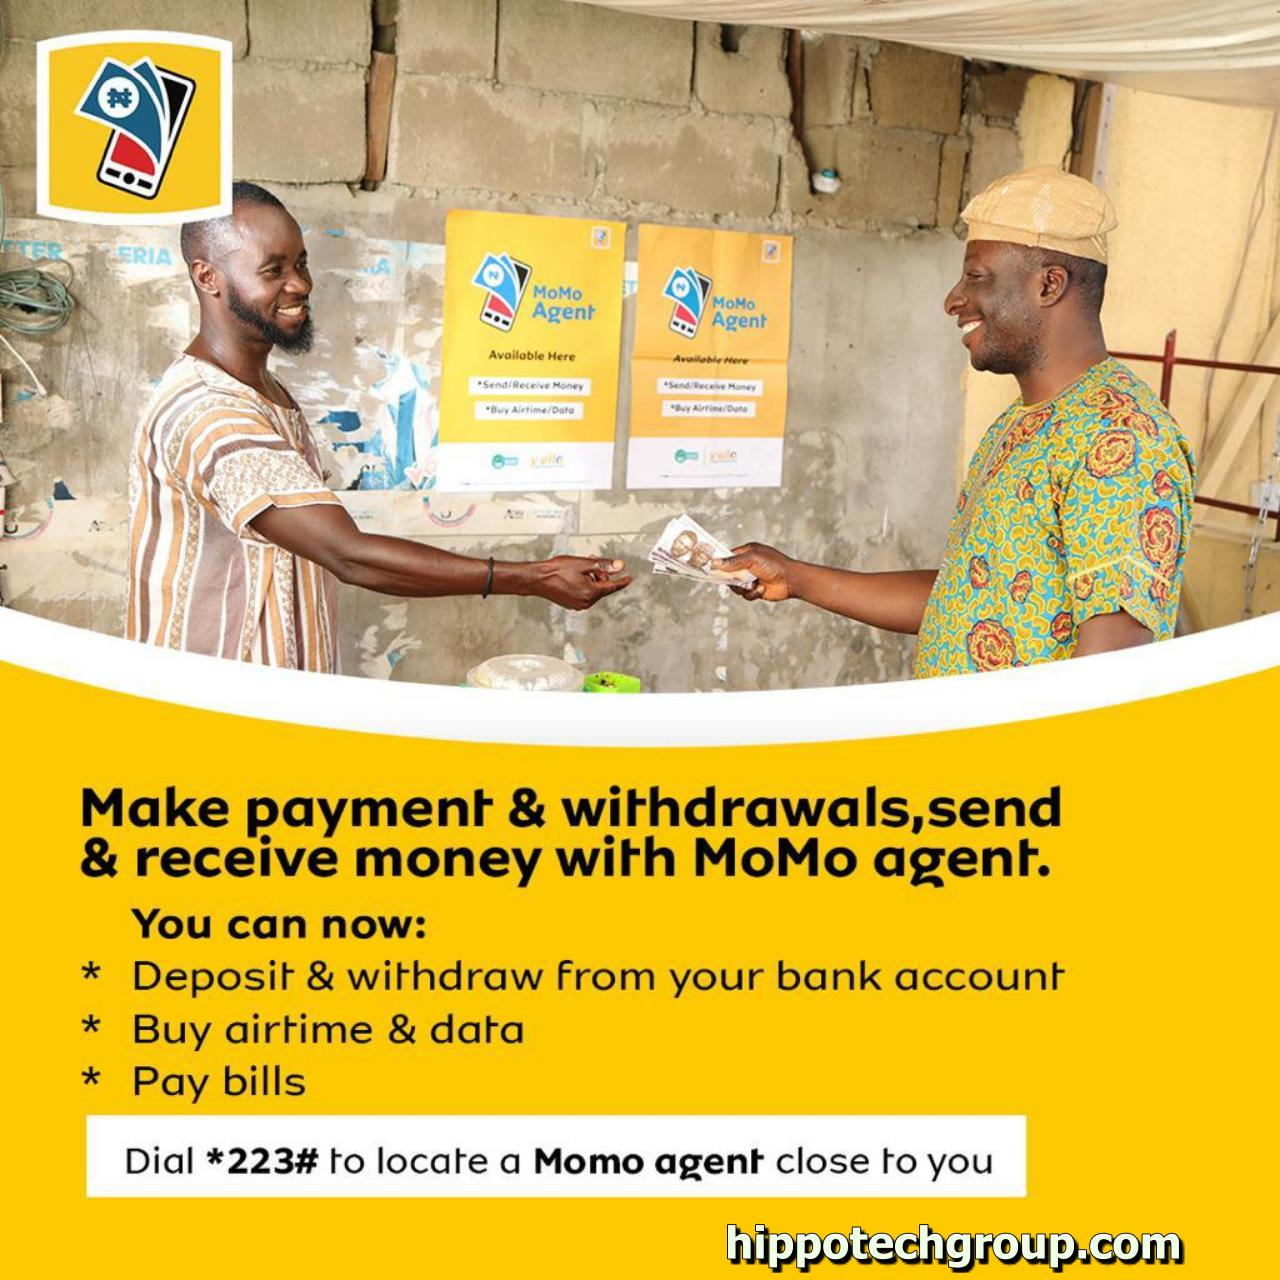 What are the Advantages of mobile money?